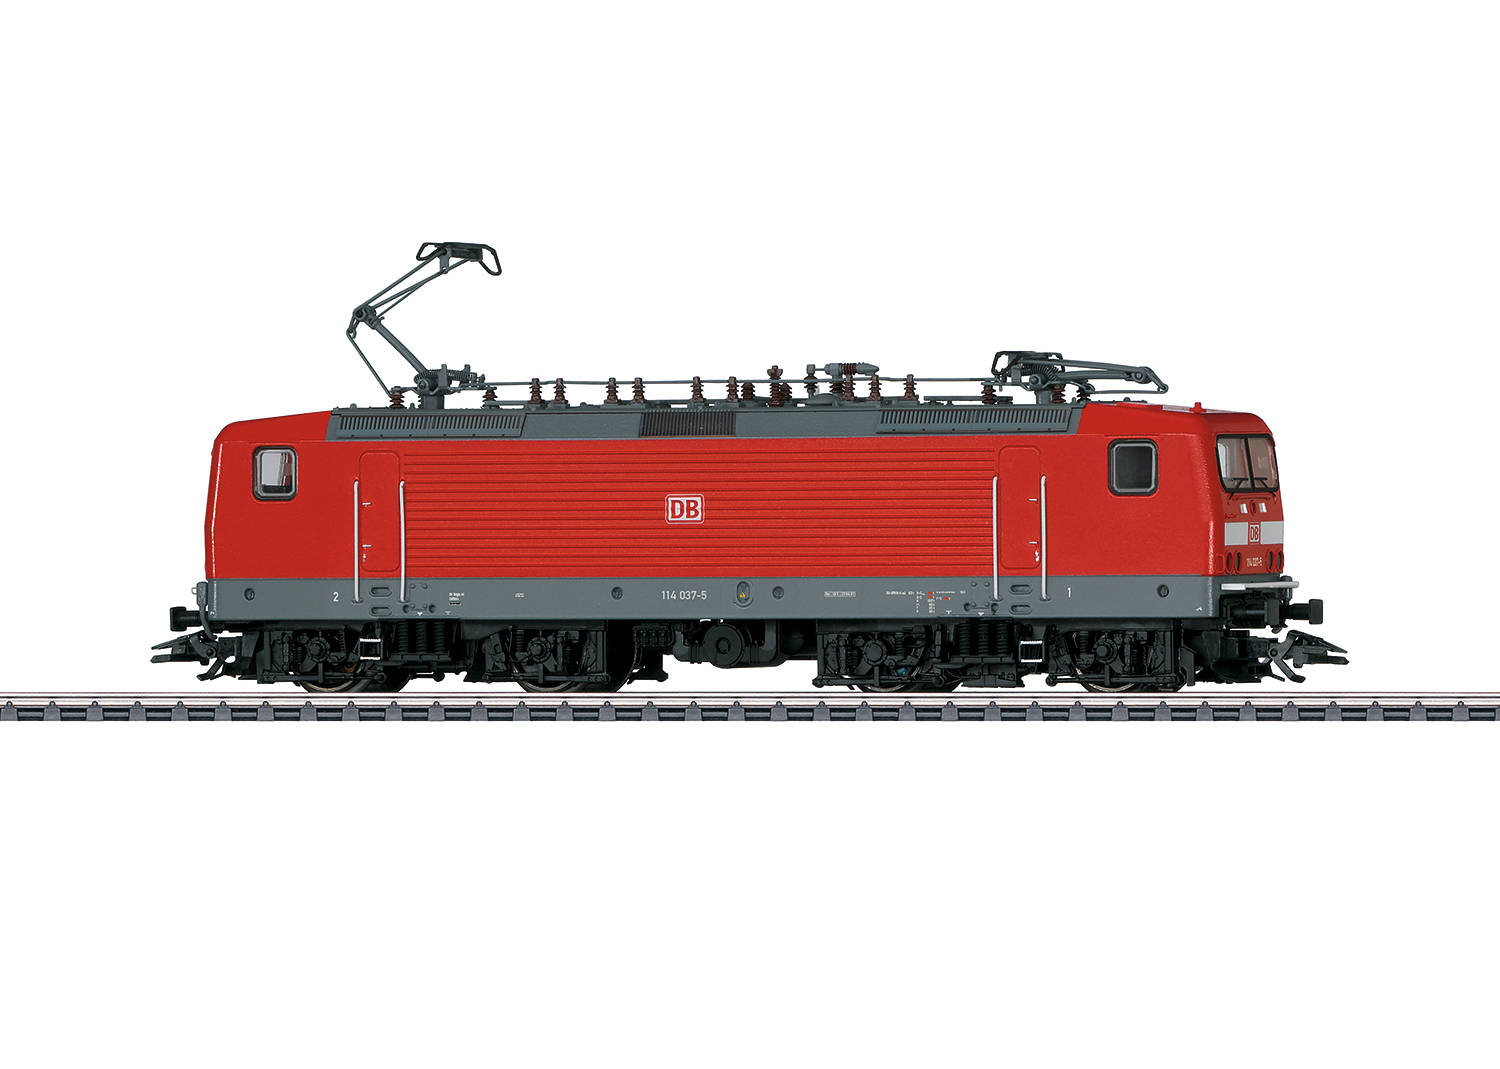 toottoot model train and scenery retailer and supplier marklinmar37426, available for ordering